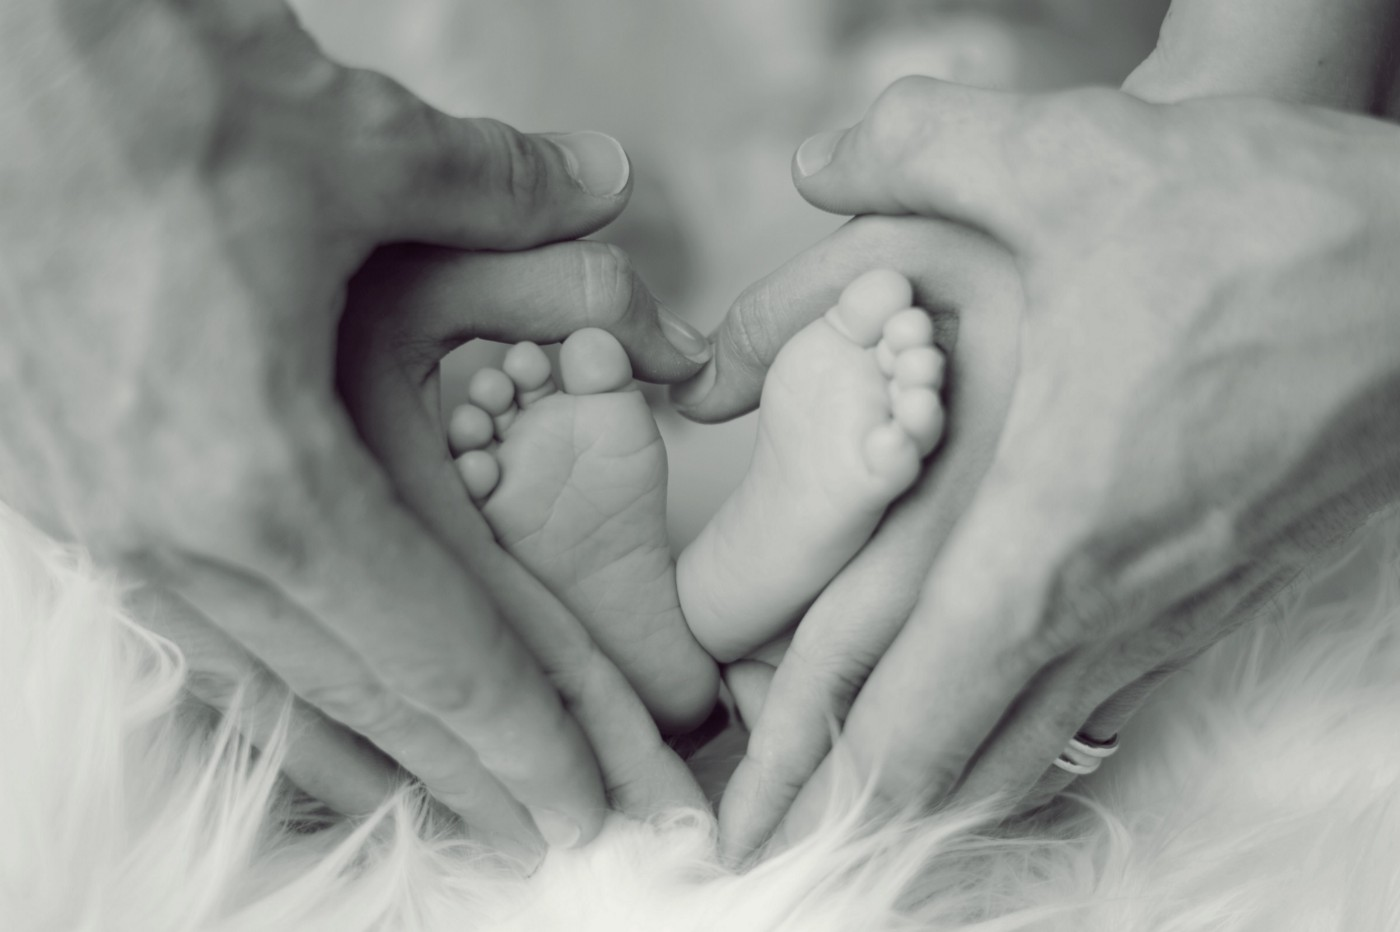 Baby's feet nestled in heart shaped hands